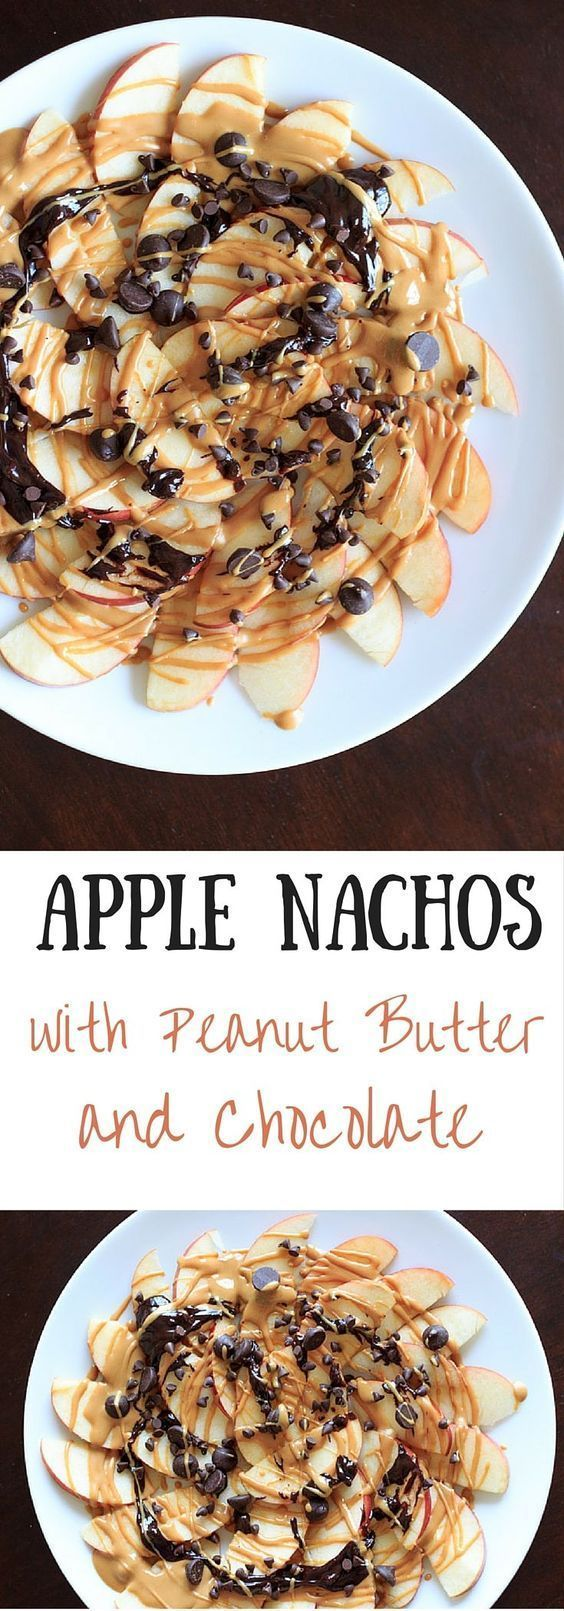 Apple Nachos With Peanut Butter And Chocolate